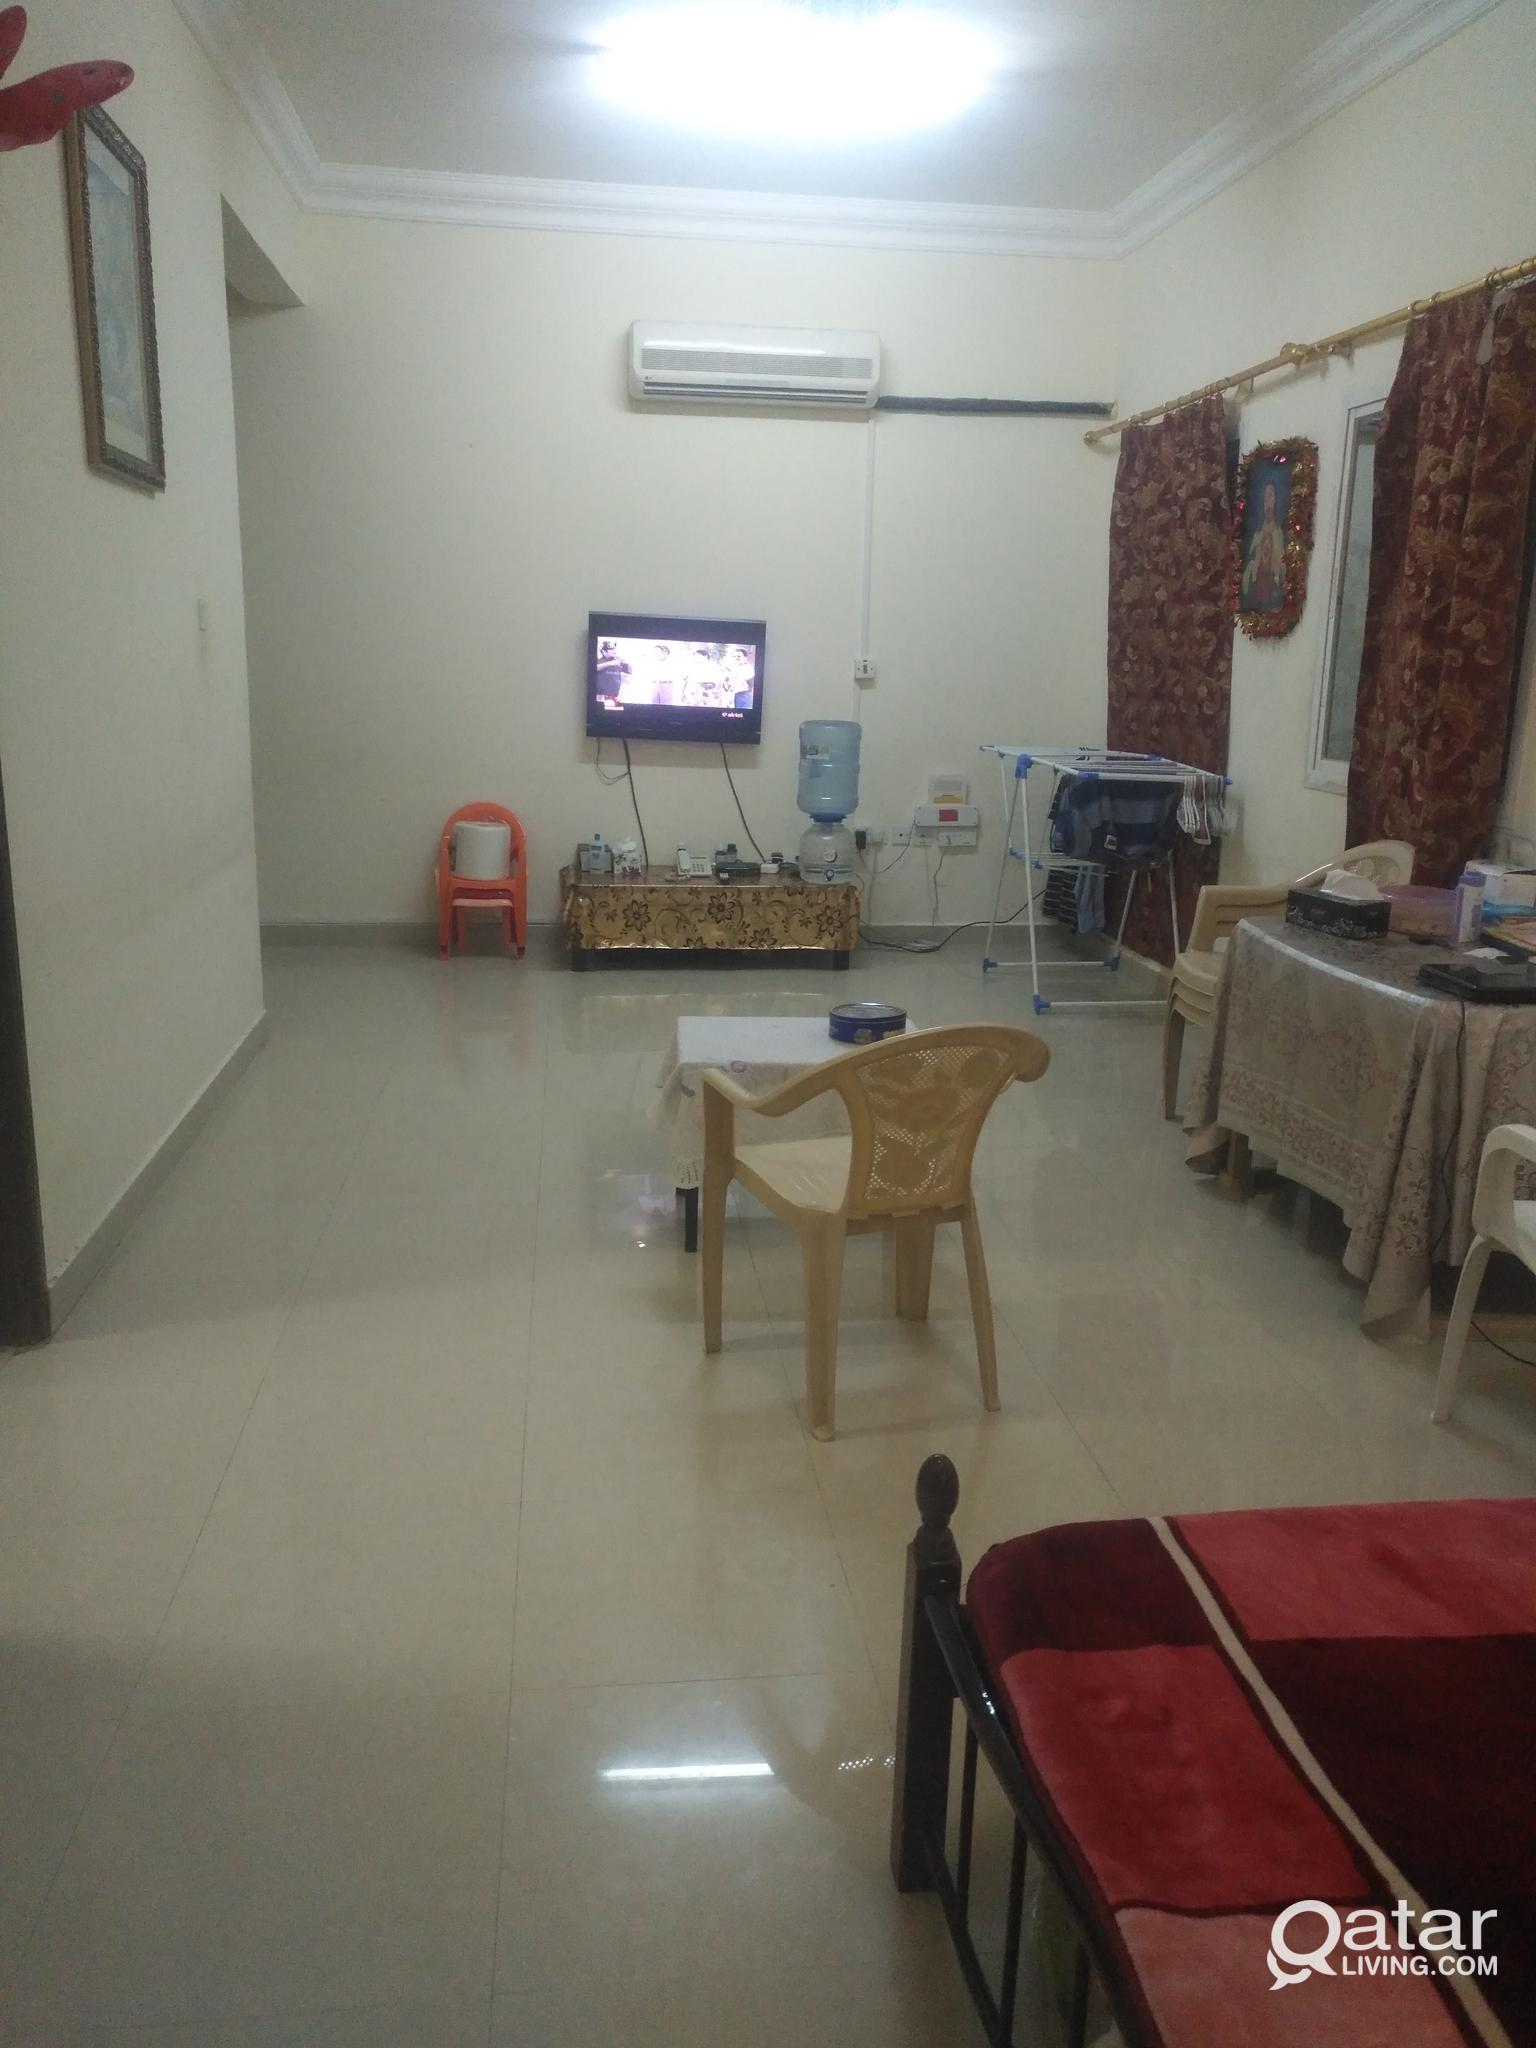 Executive shared bachelor accommodation from Aug